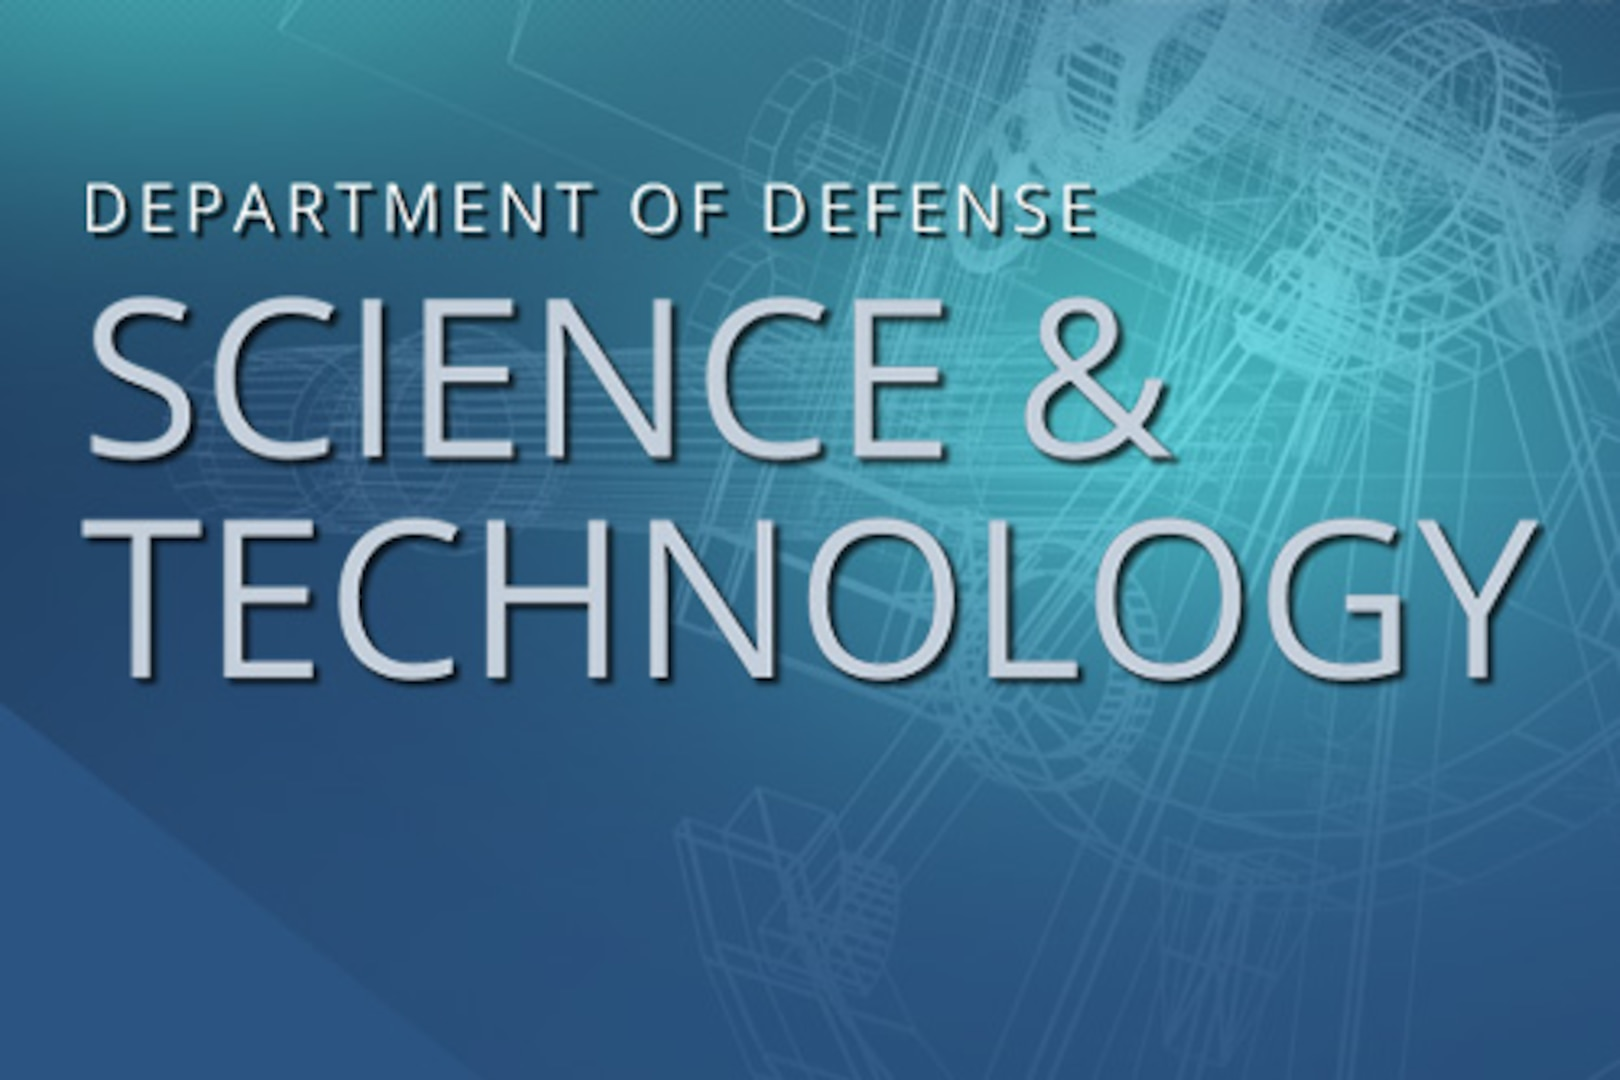 Given today's globalized access to knowledge and the rapid pace of technology development, innovation, speed, and agility have taken on a greater importance. The Department of Defense serves as an innovative leader in developing technology to protect Americans and troops – on and off the battlefield.